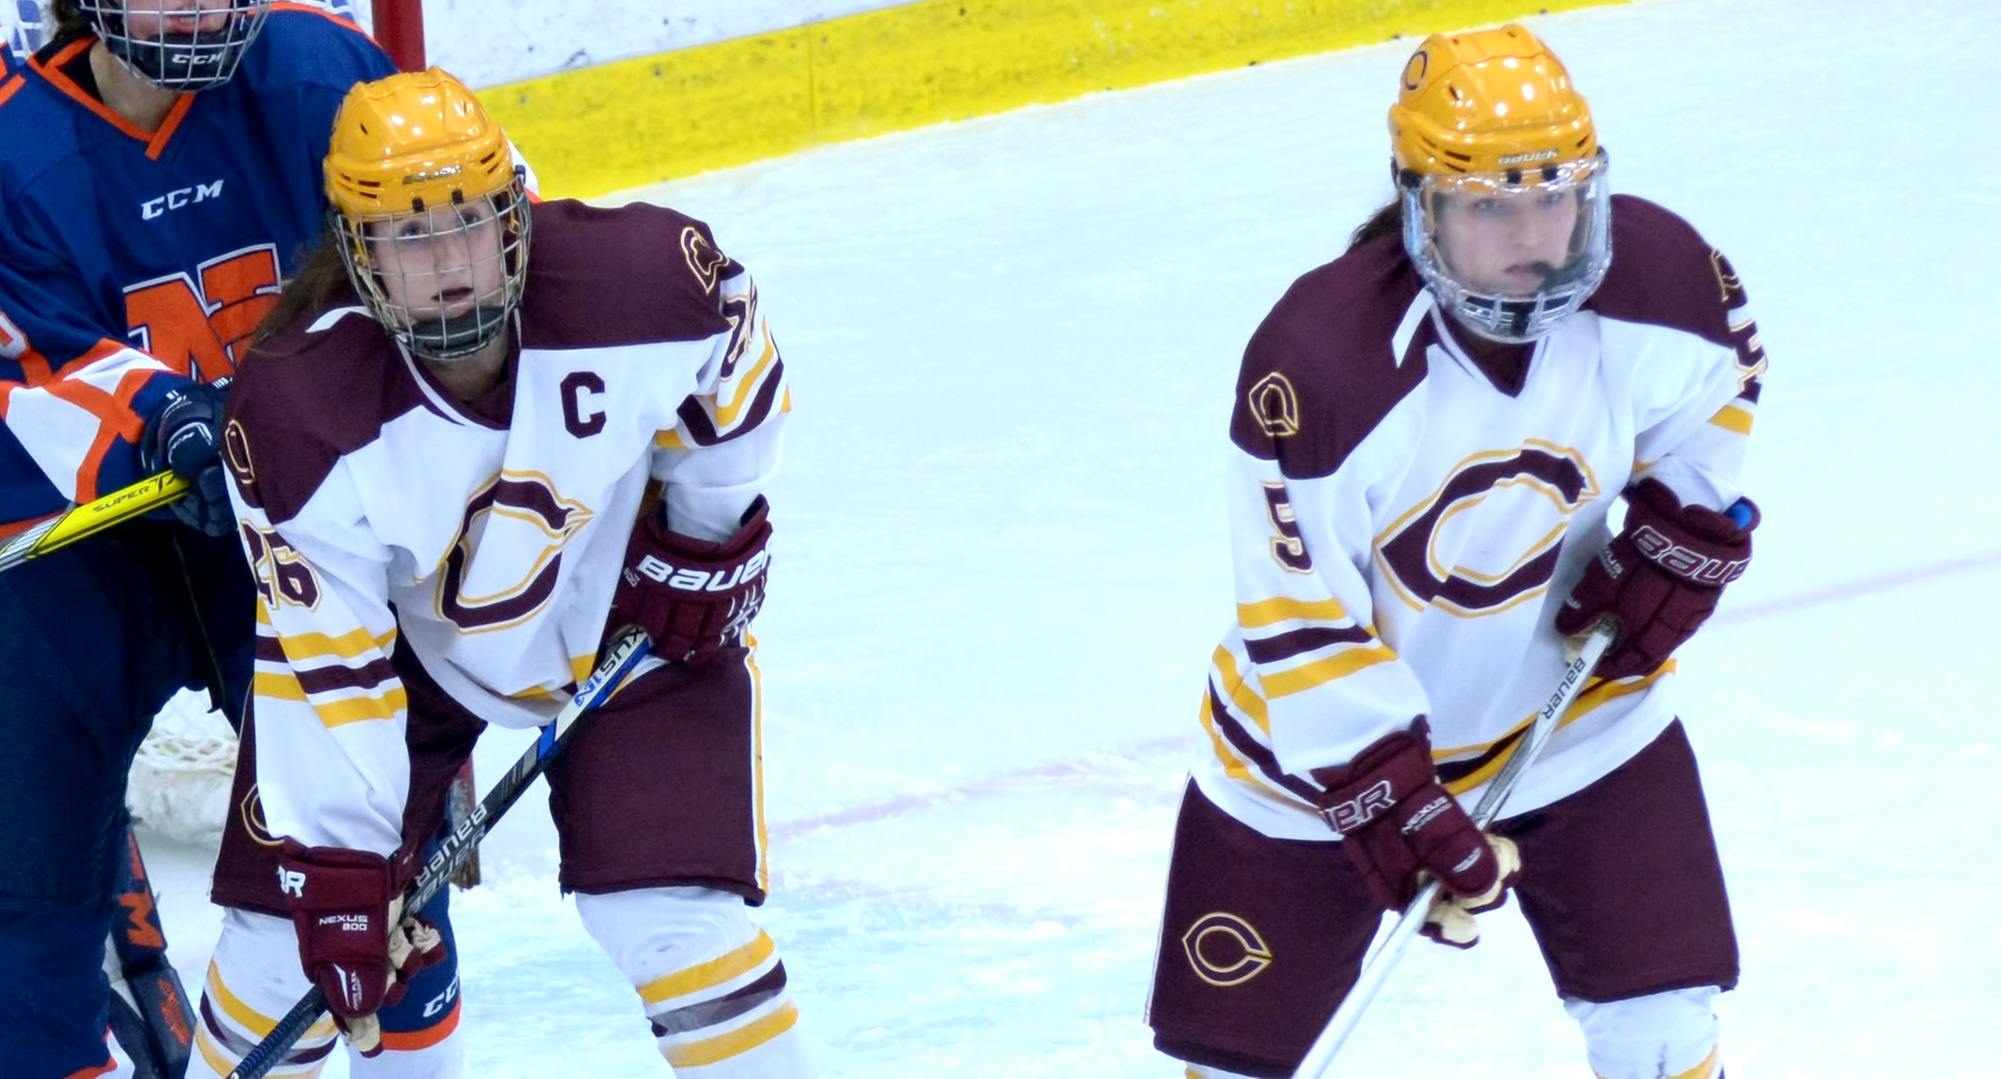 Senior Tori Davis (L) and Josee Lundgren had the Cobbers' goals in their game at nationally ranked Wis.-Eau Claire.